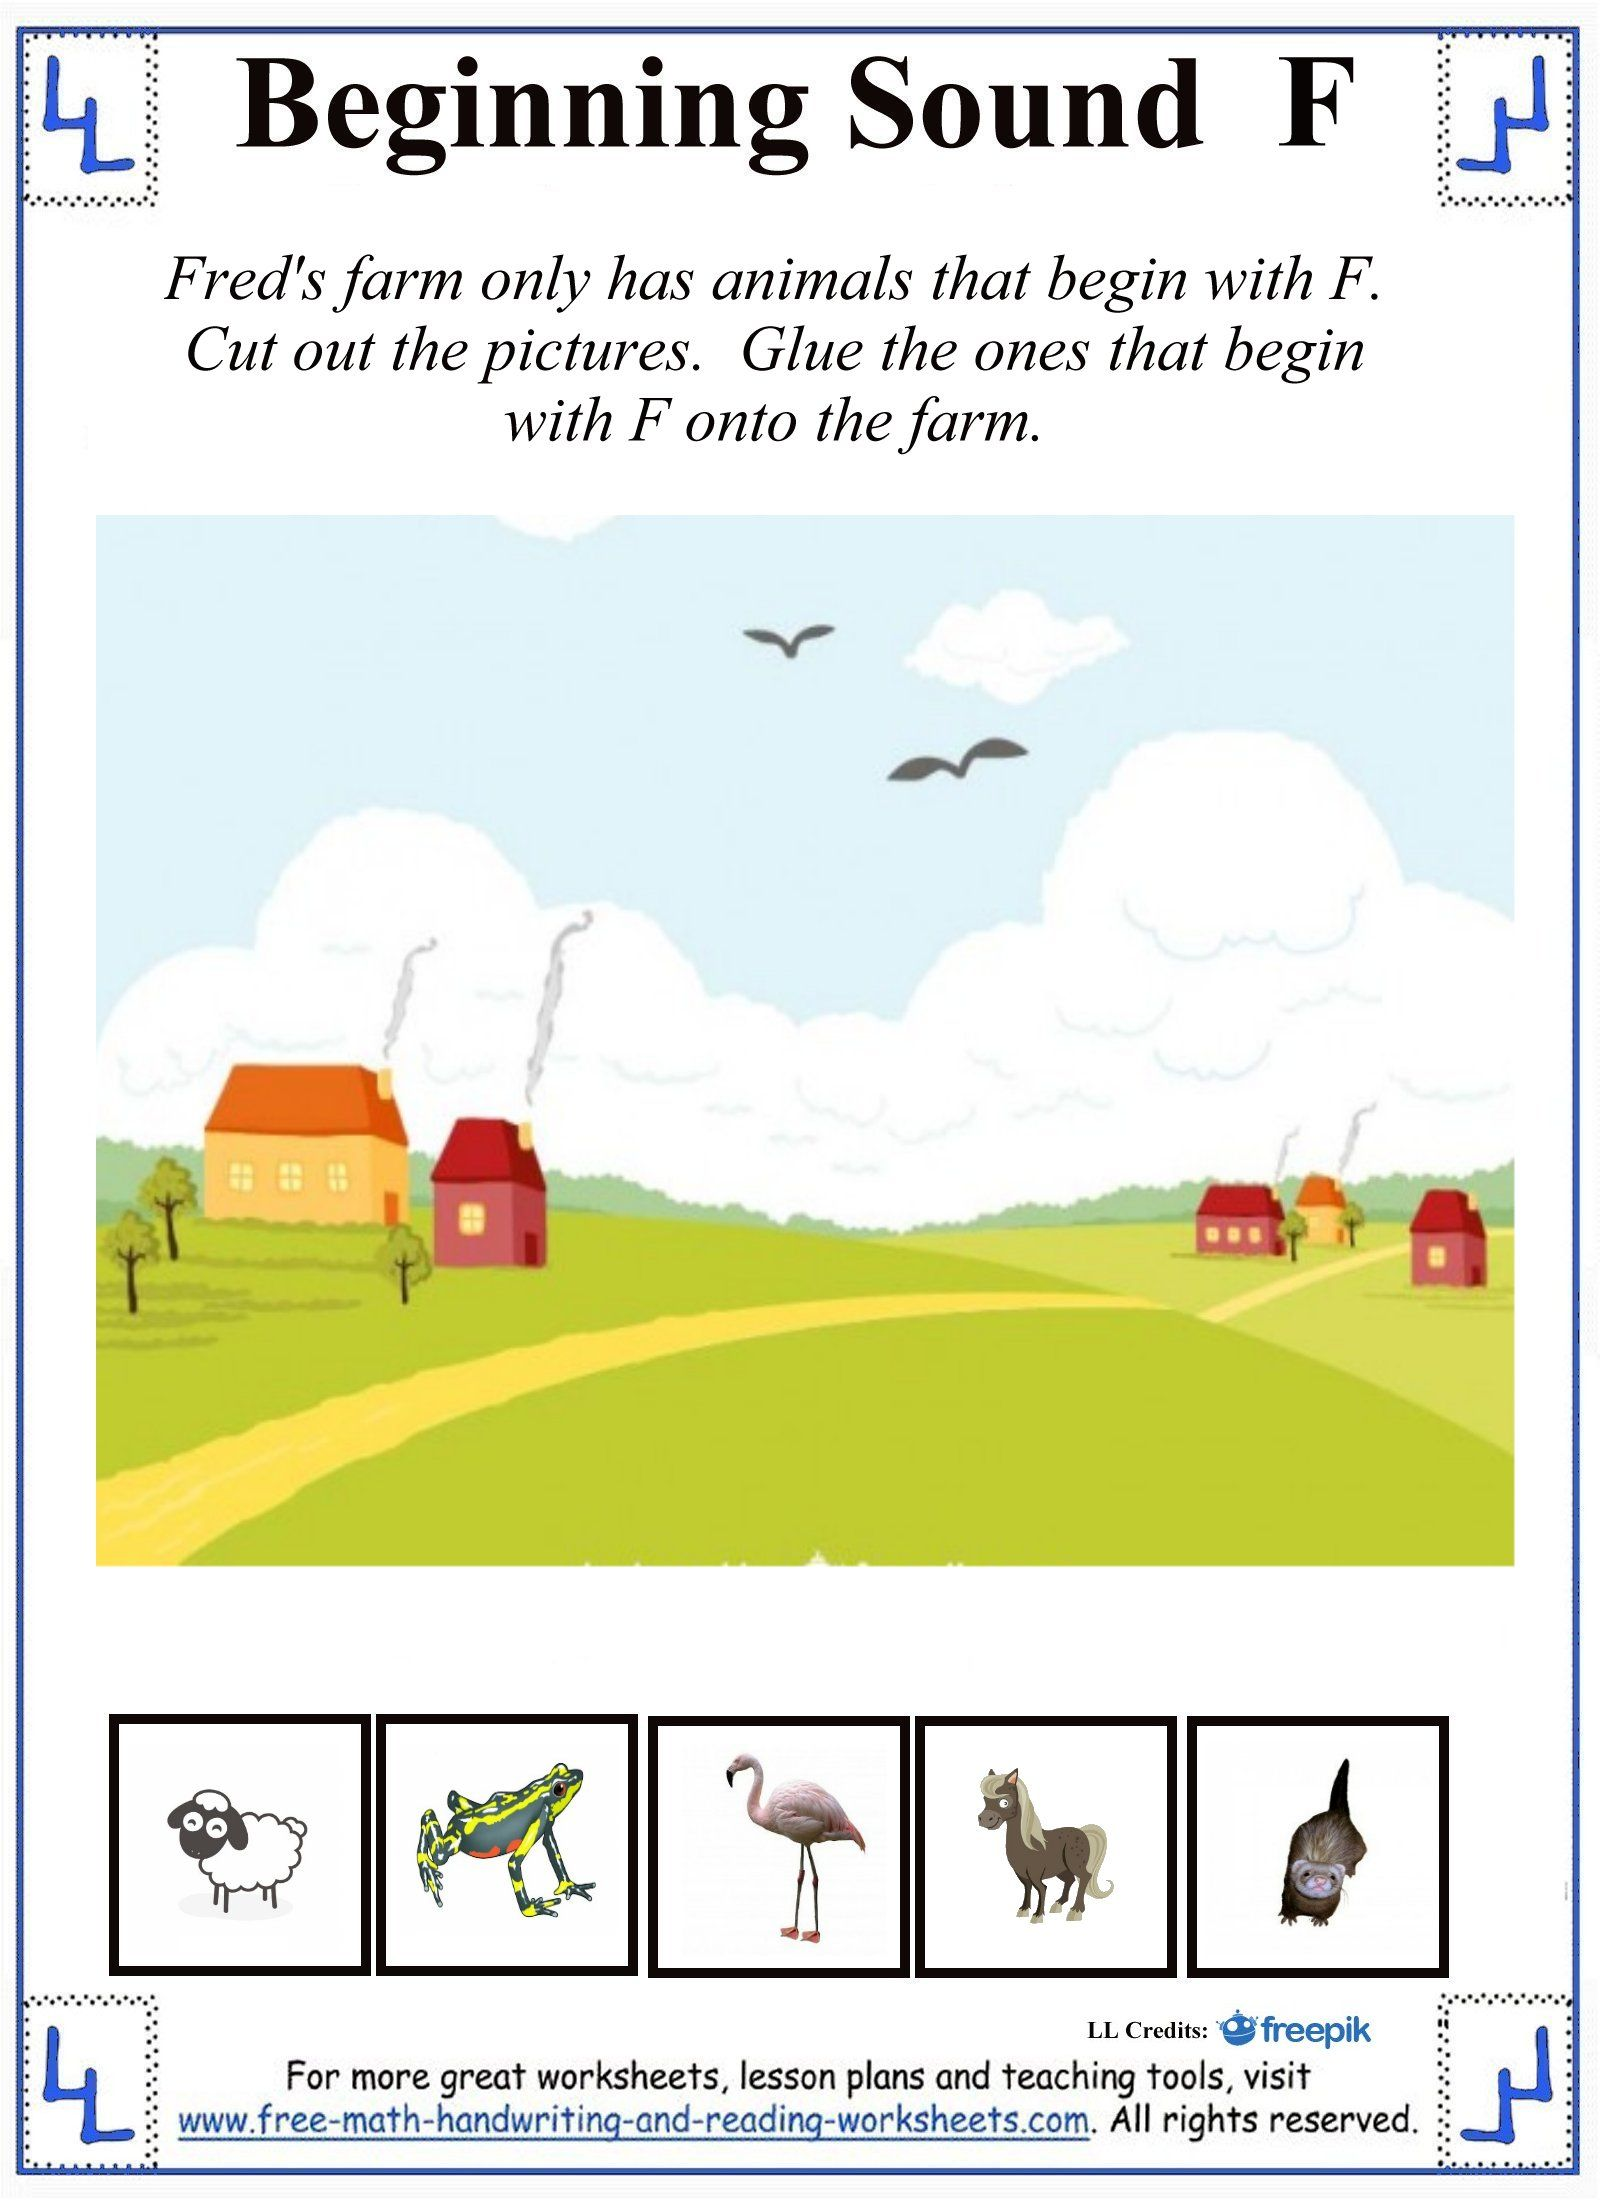 F Letter Worksheets Letter Activities Letter Worksheets Writing Activities [ 2200 x 1600 Pixel ]